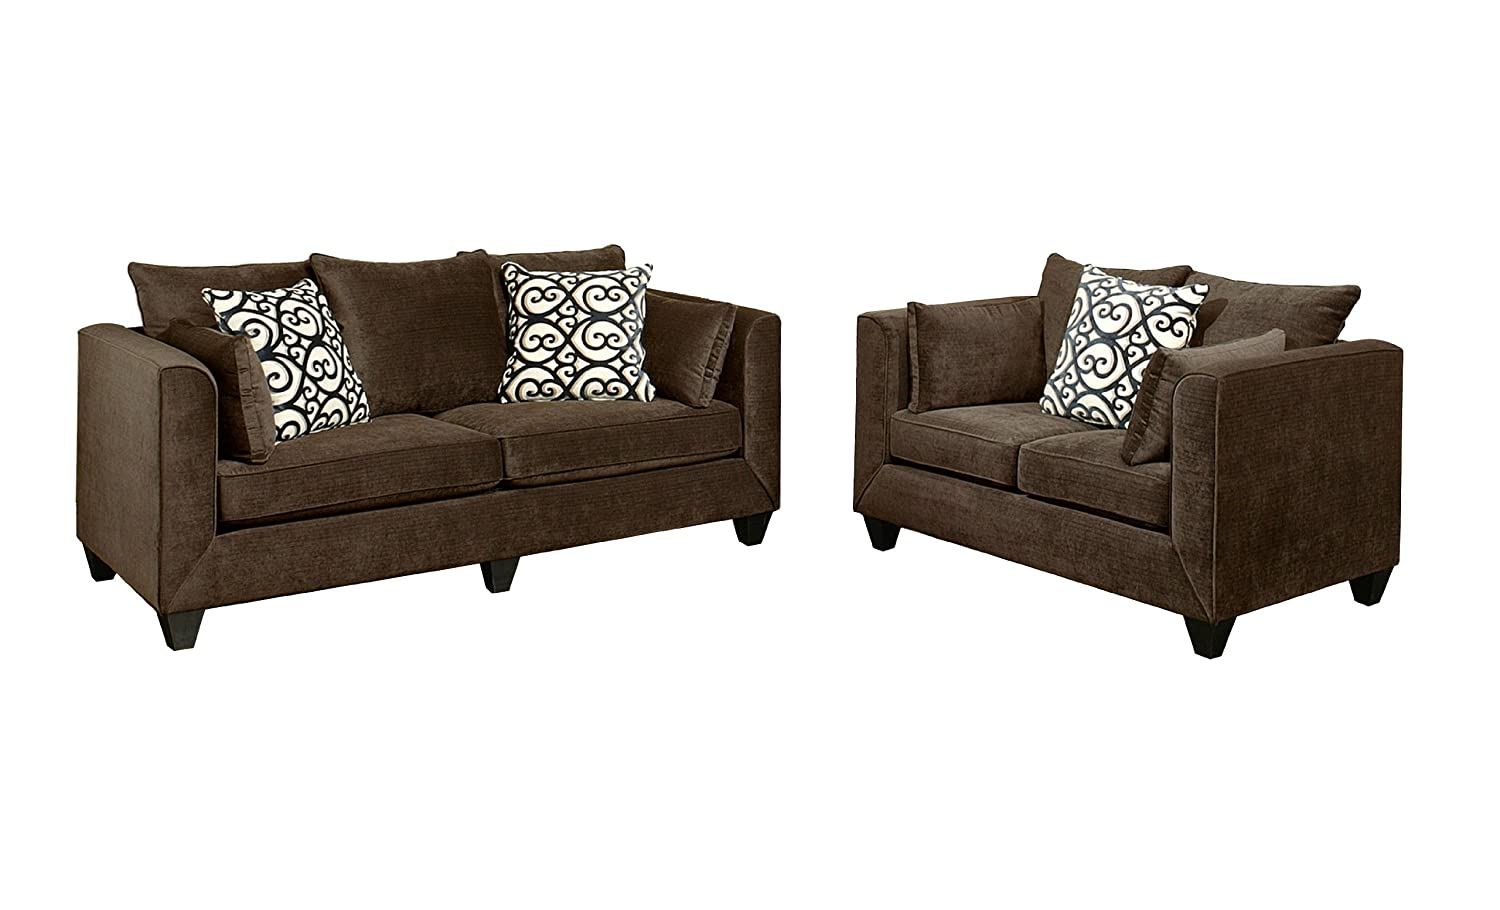 Furniture of America Polluxe 2-Piece Chenille Upholstered Sofa Set - Chocolate